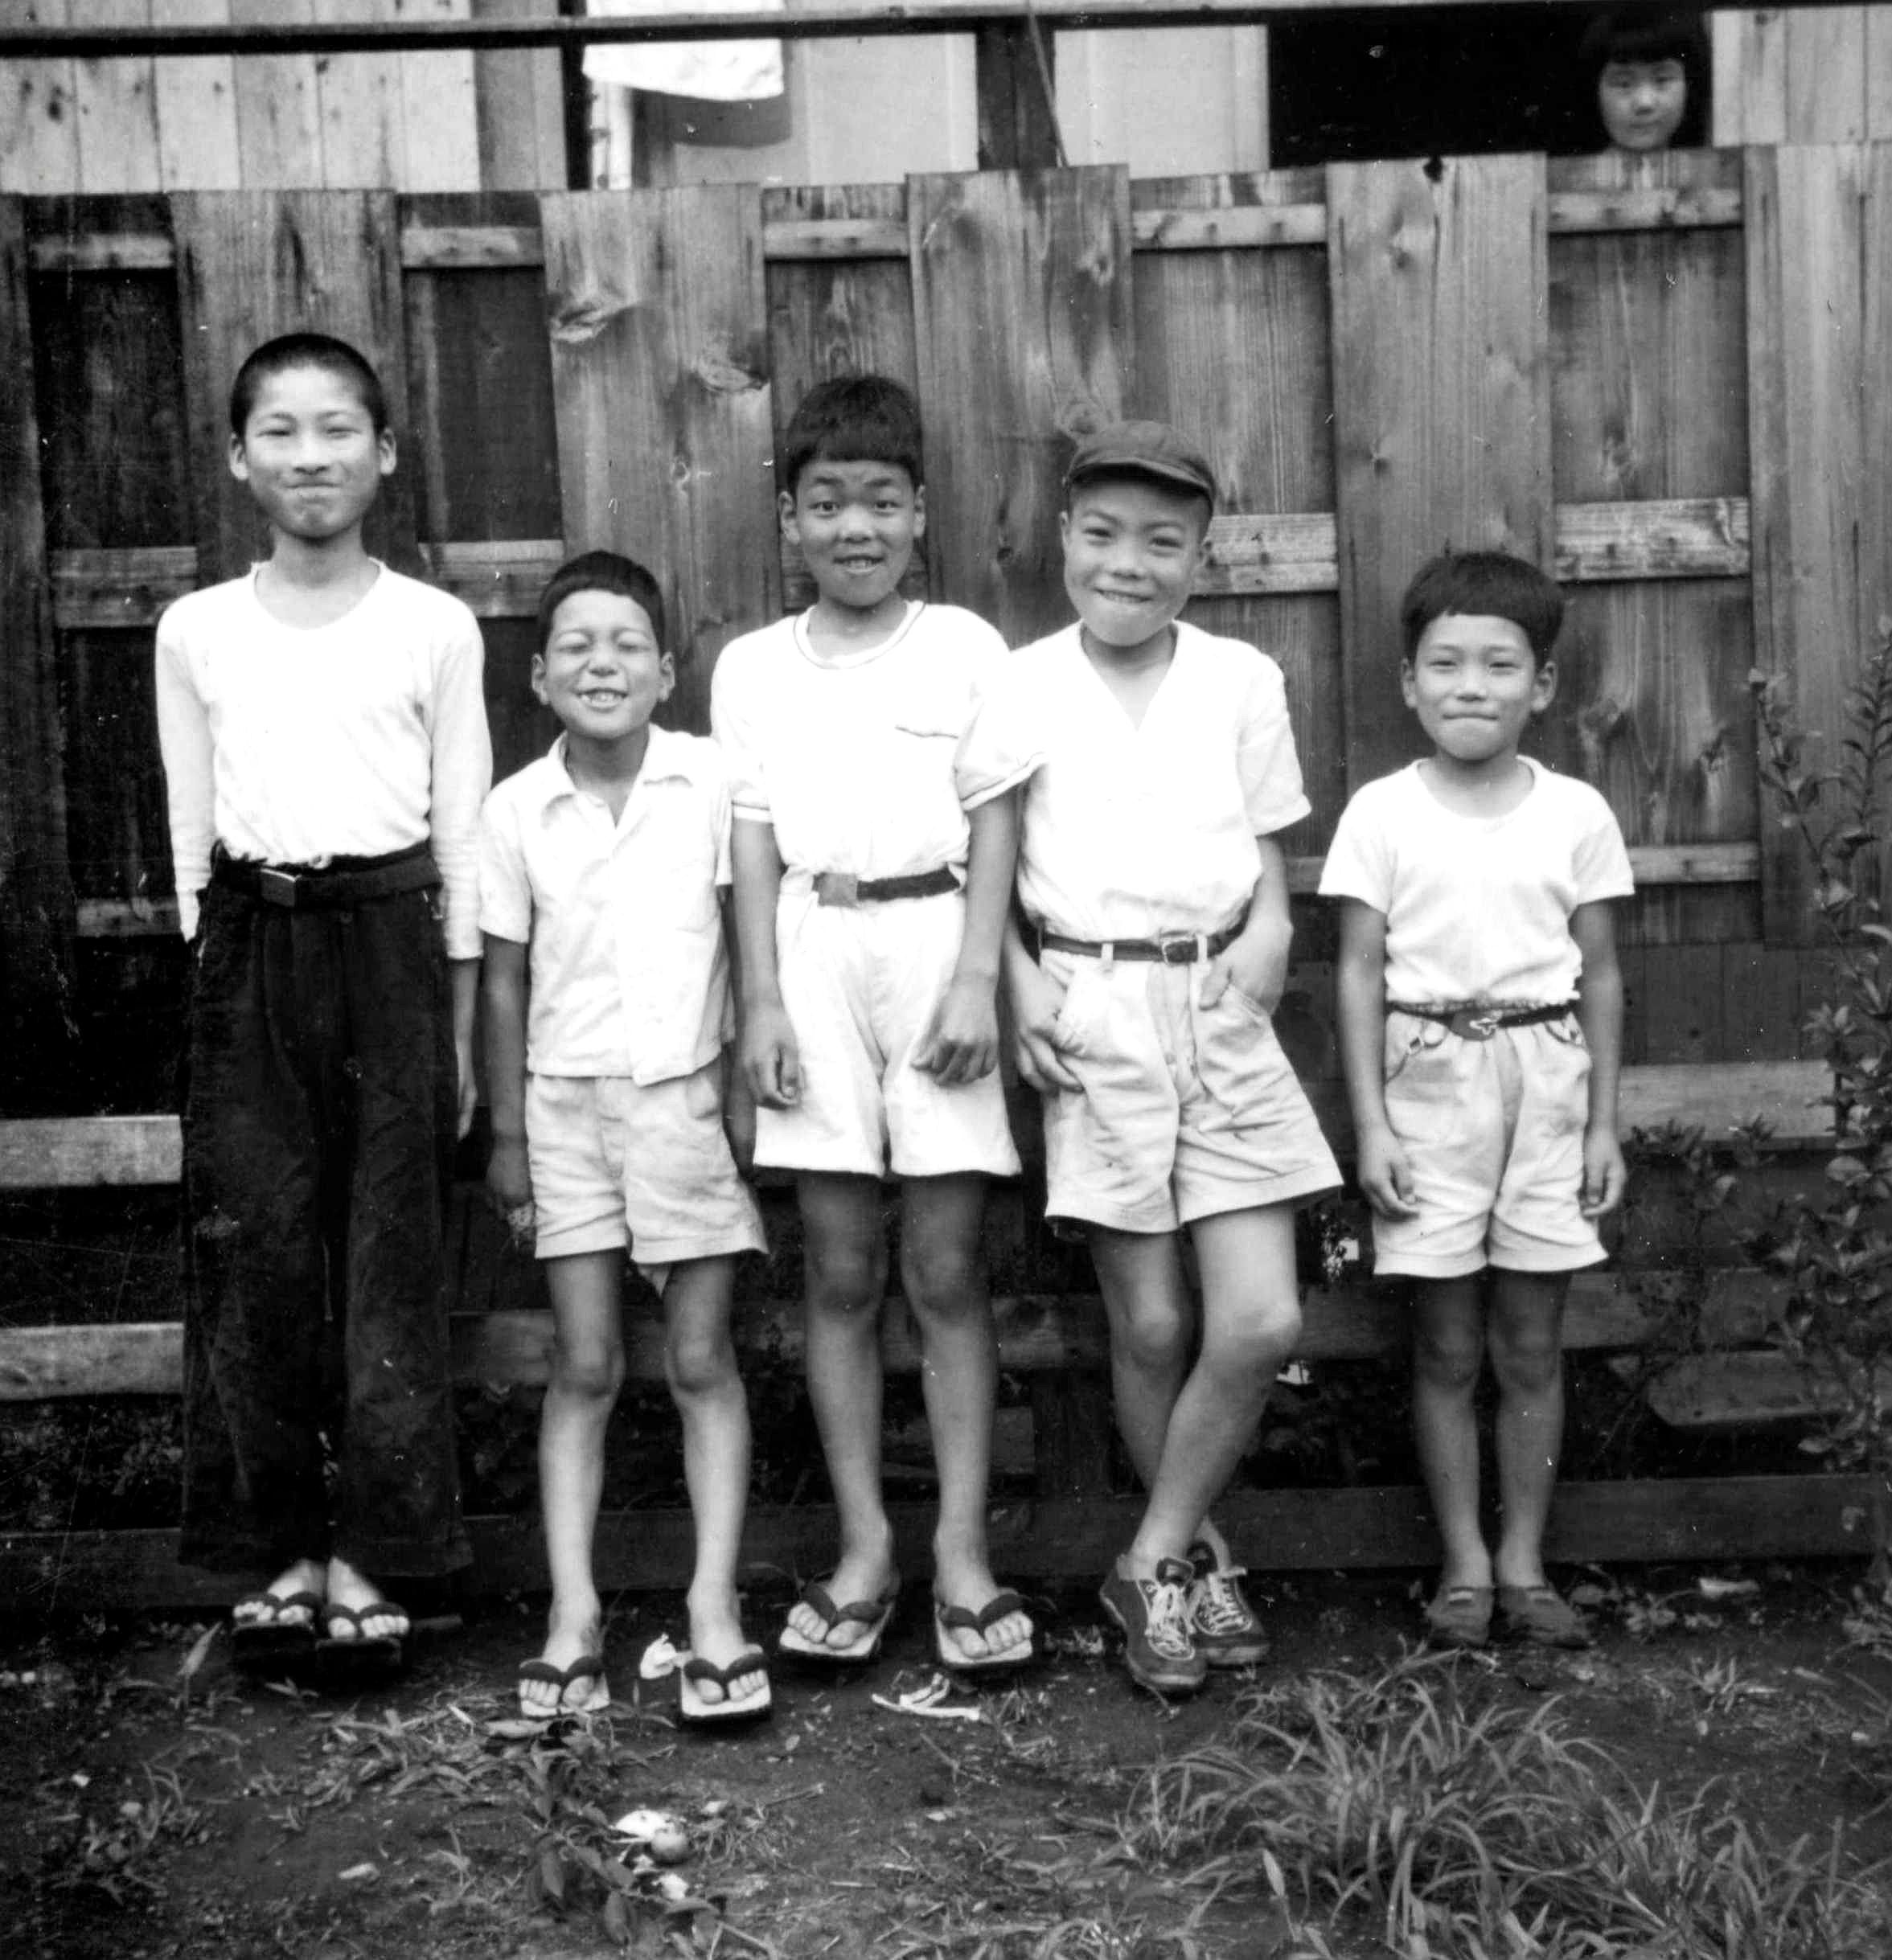 smiling boys against a fence. Japan